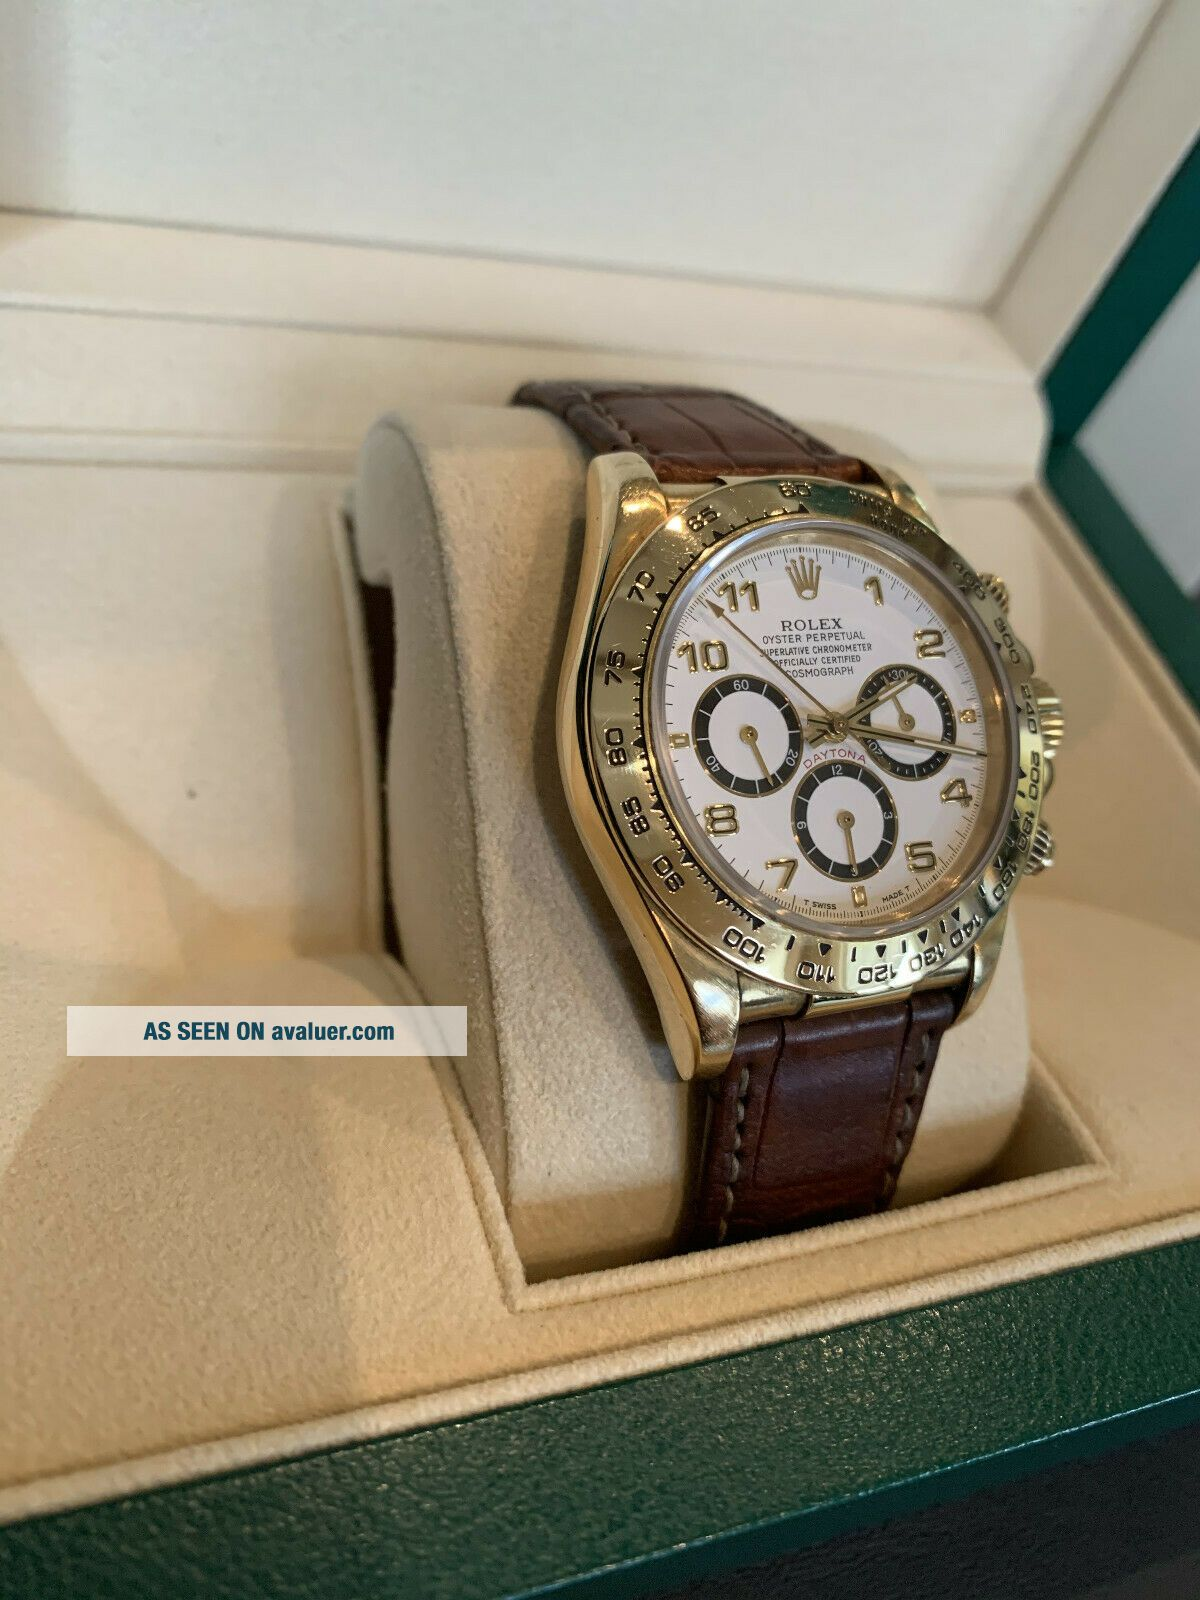 Rolex Daytona 18k Yellow Gold White Dial Chronograph Watch with Zenith Mo 16518